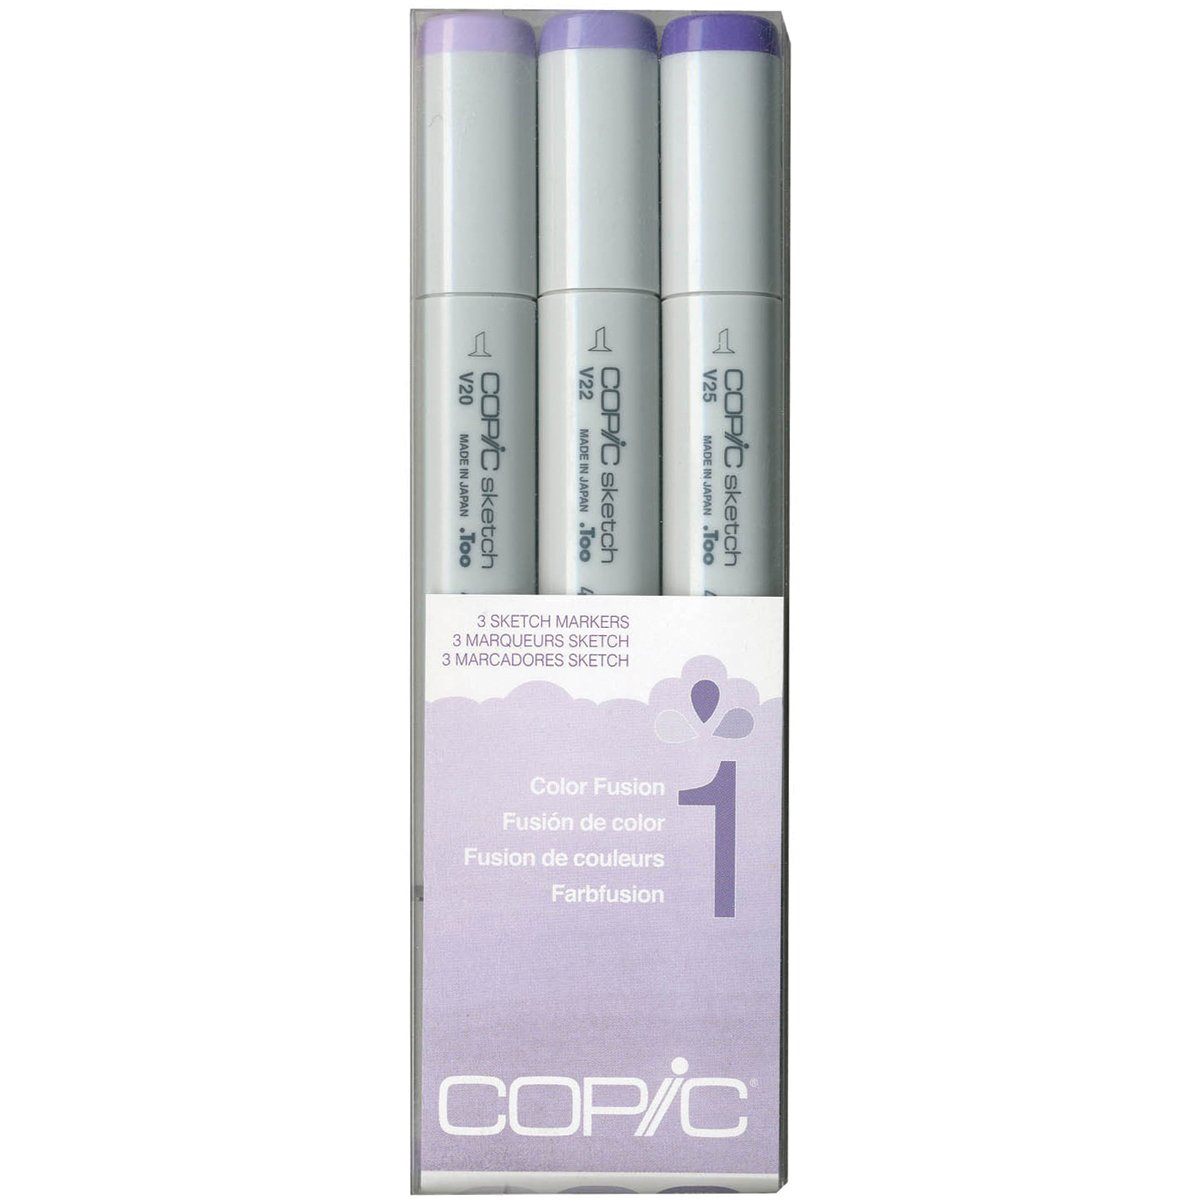 Copic Marker Sketch Color Fusion Markers, CSCF 1, 3-Pack